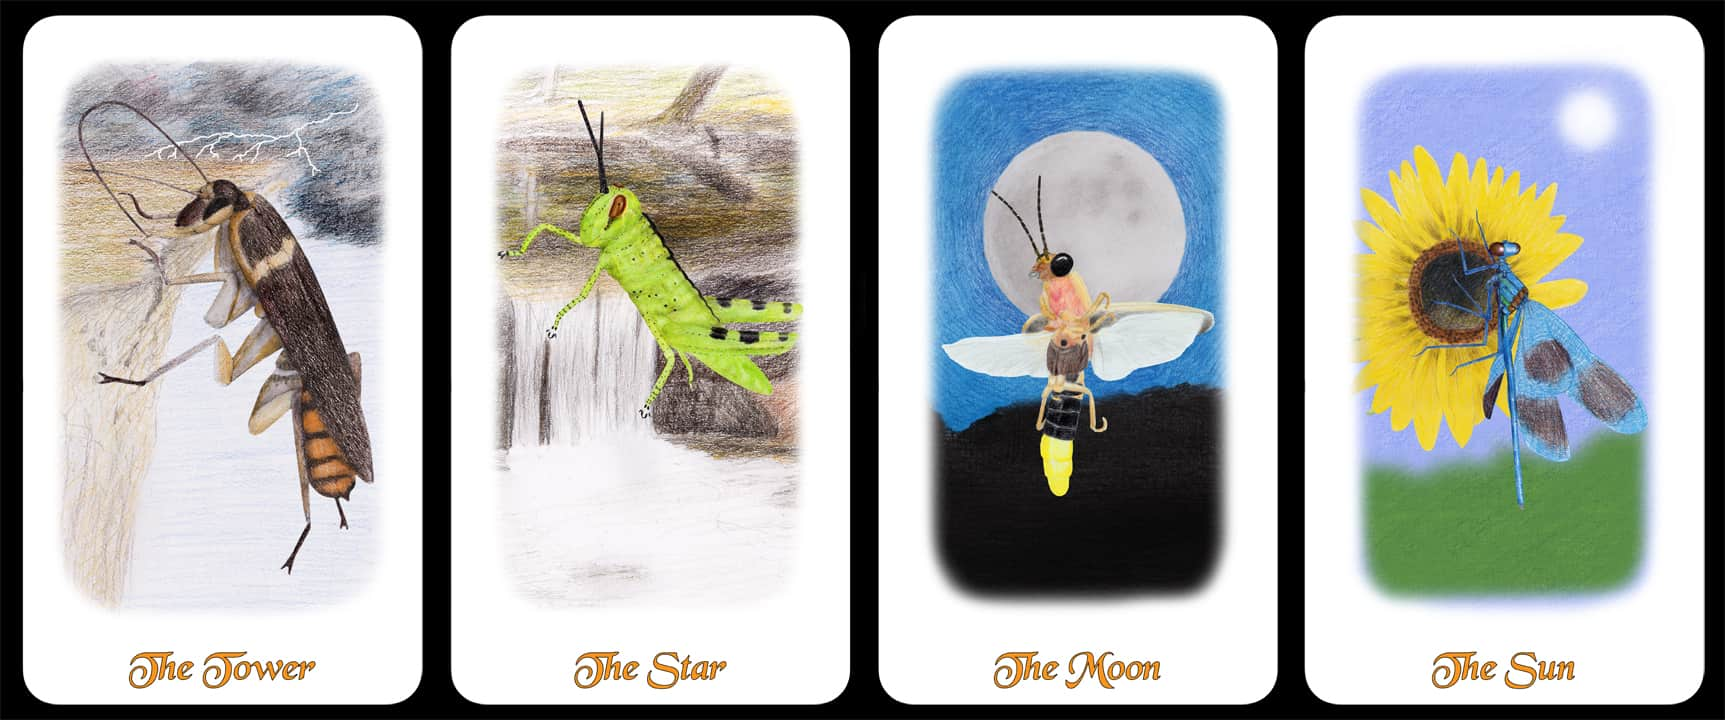 The Kings - The Arthropoda Tarot Deck by Linda Ursin